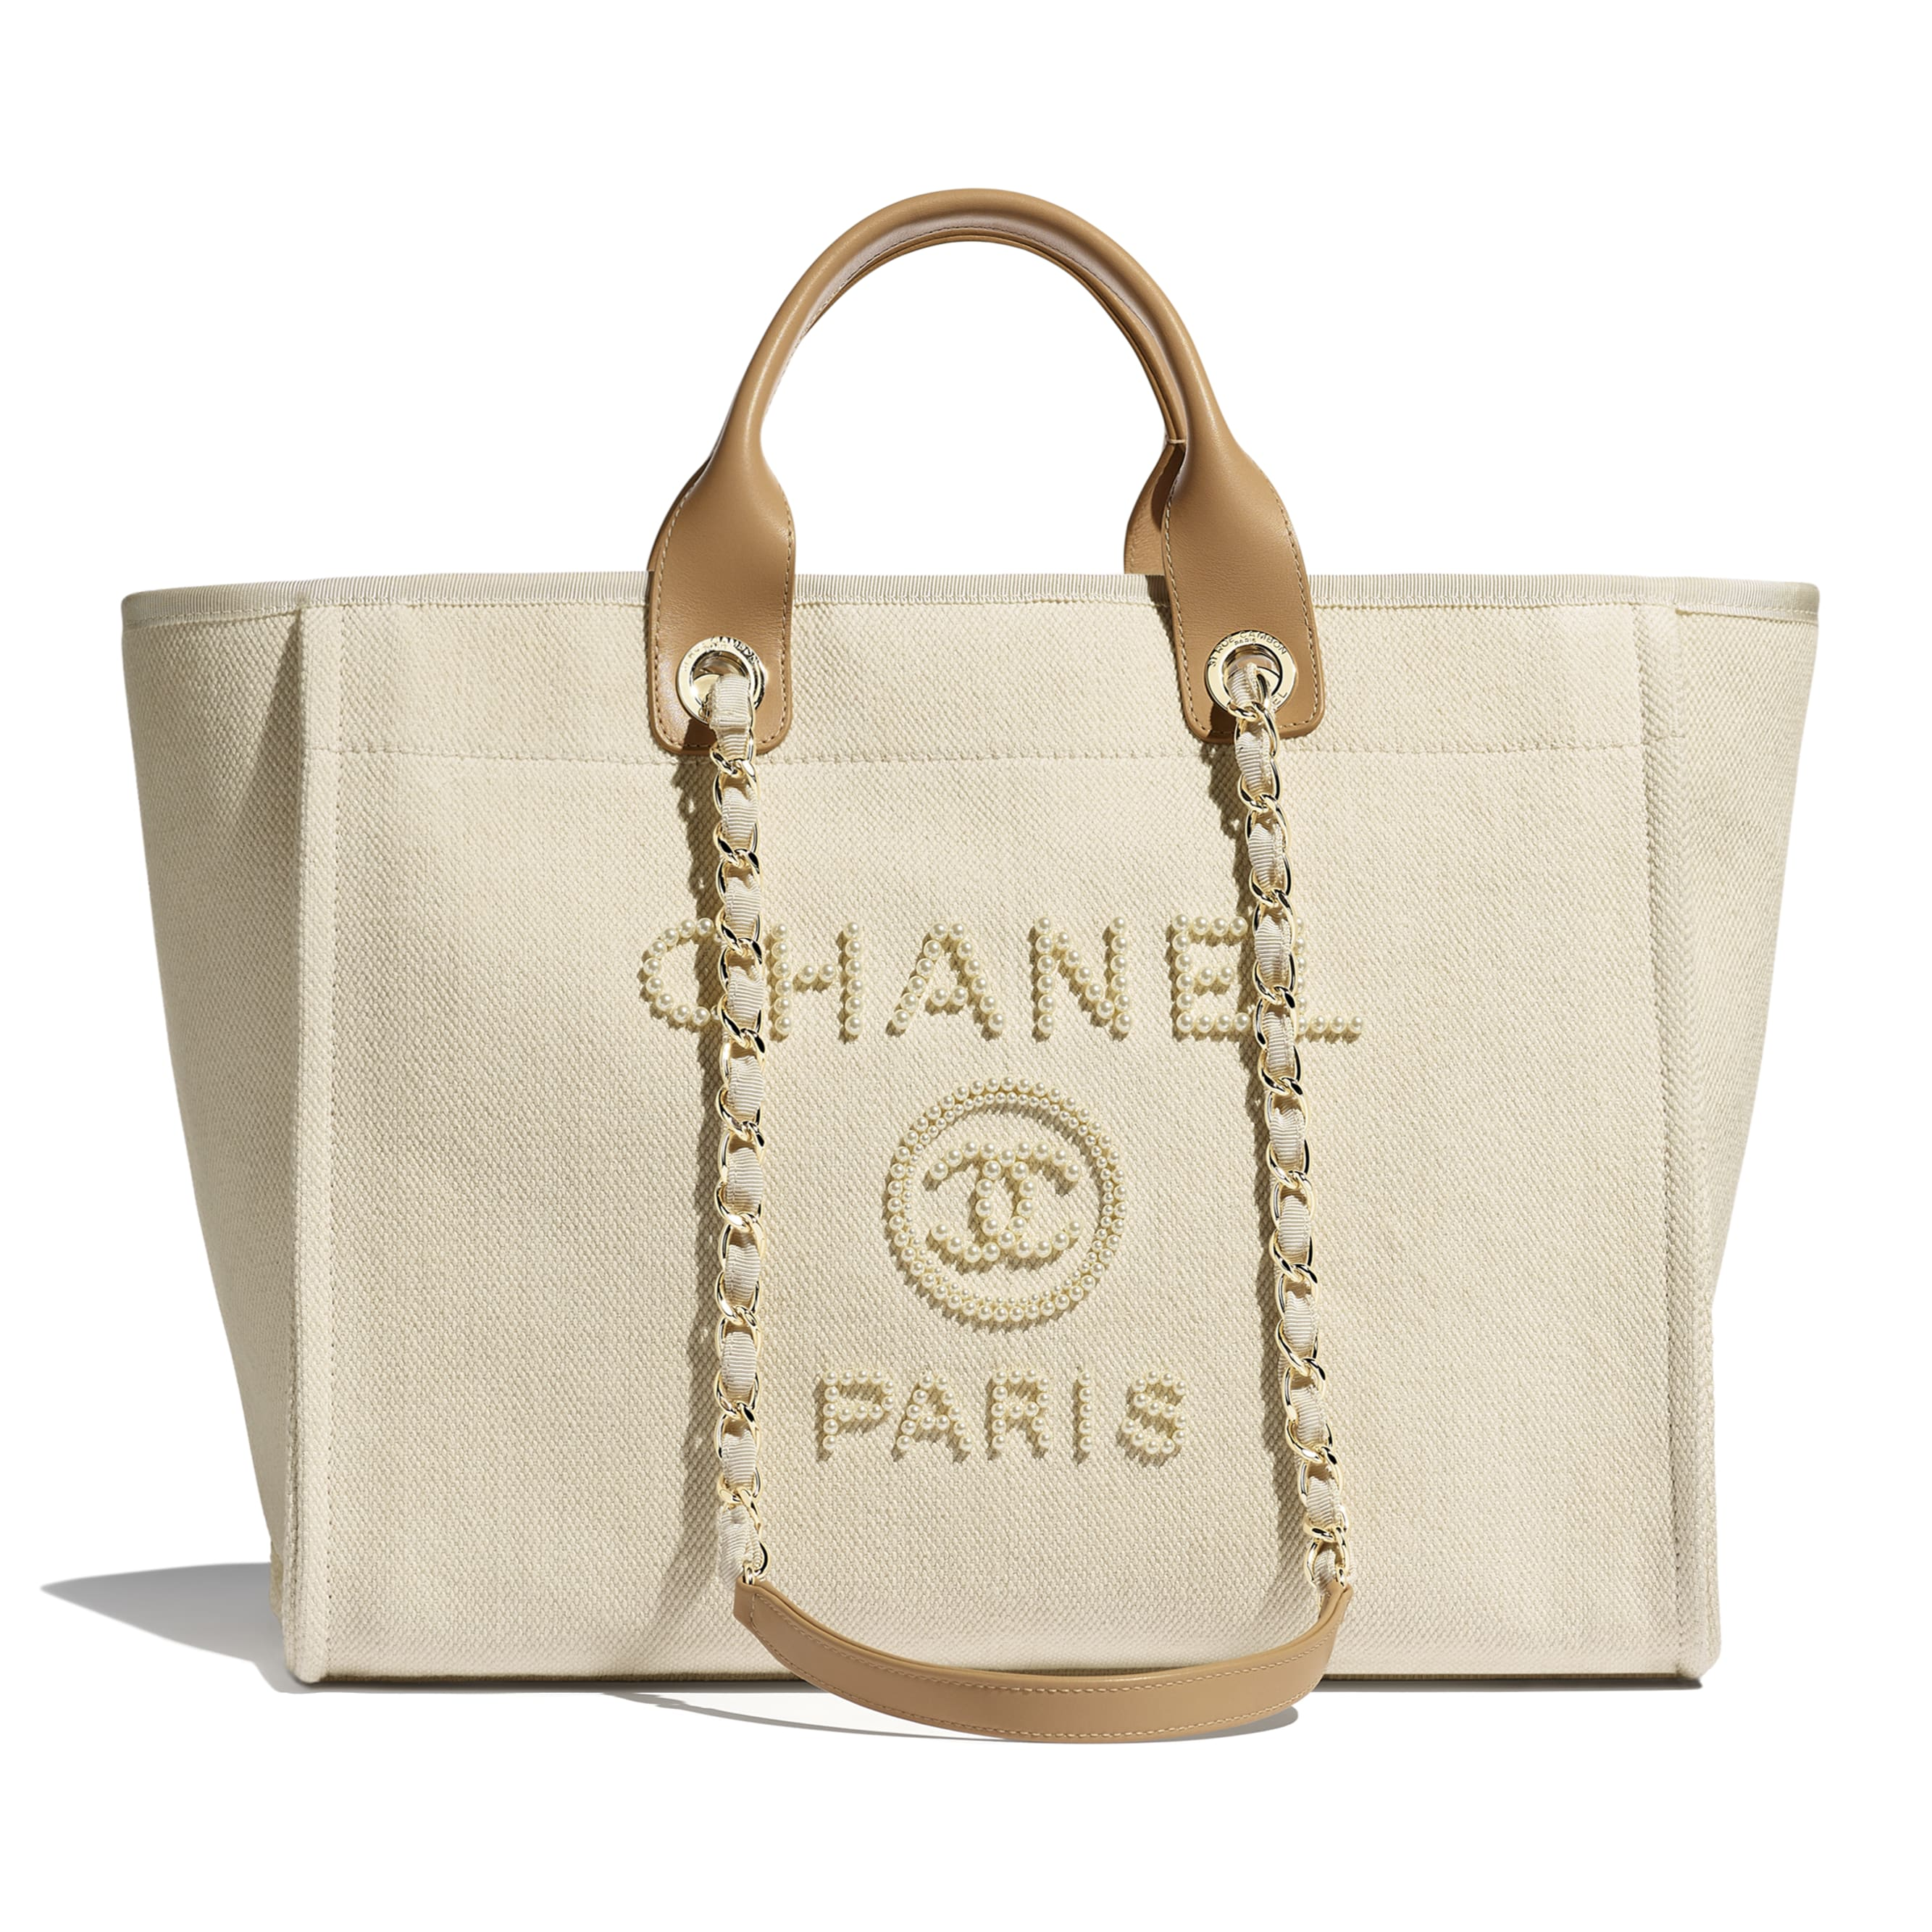 Large Tote - Ecru & Beige - Mixed Fibers, Imitation Pearls & Gold-Tone Metal - CHANEL - Default view - see standard sized version